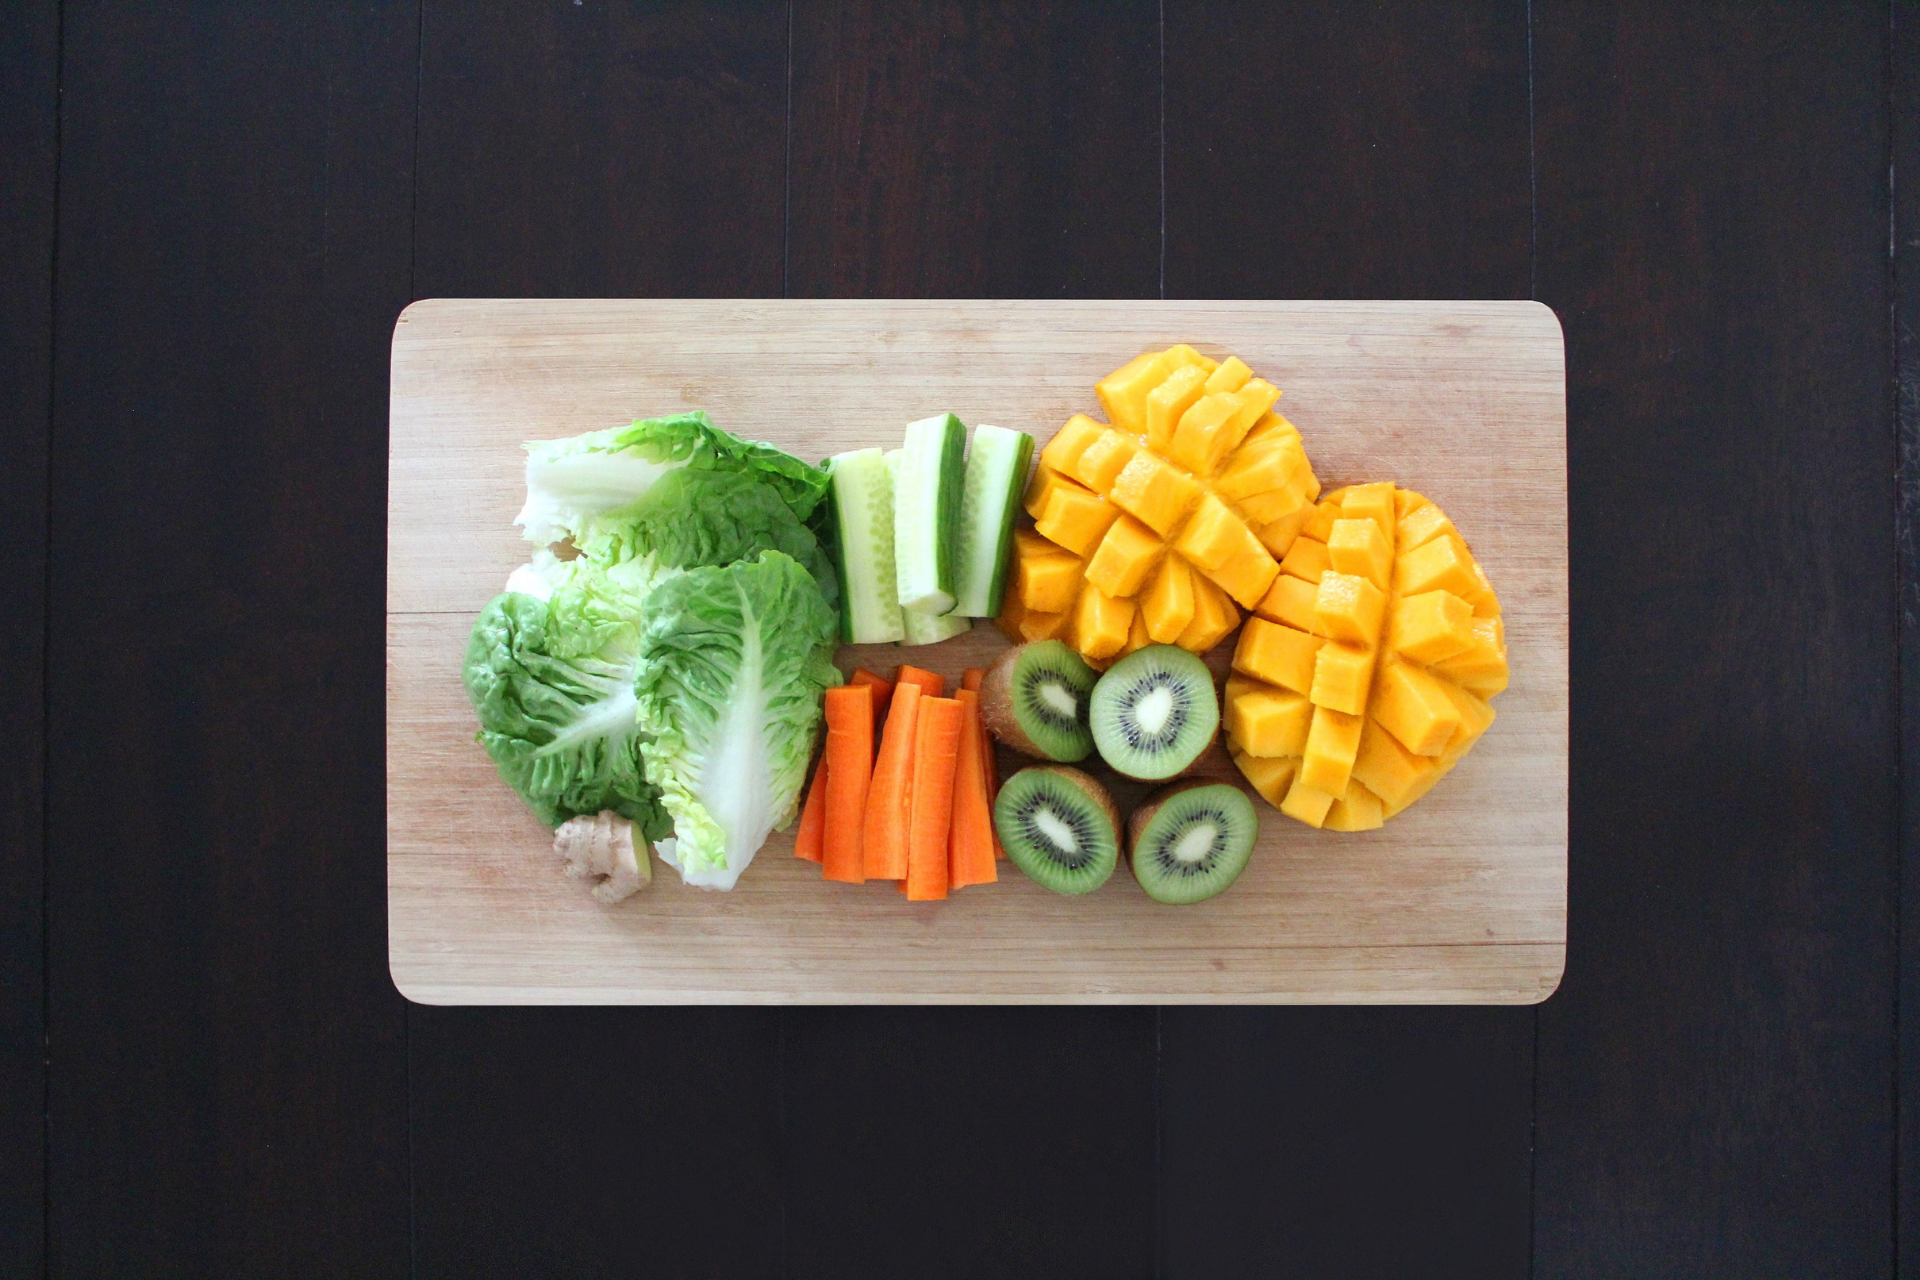 A cutting board filled with fruits and vegetables.